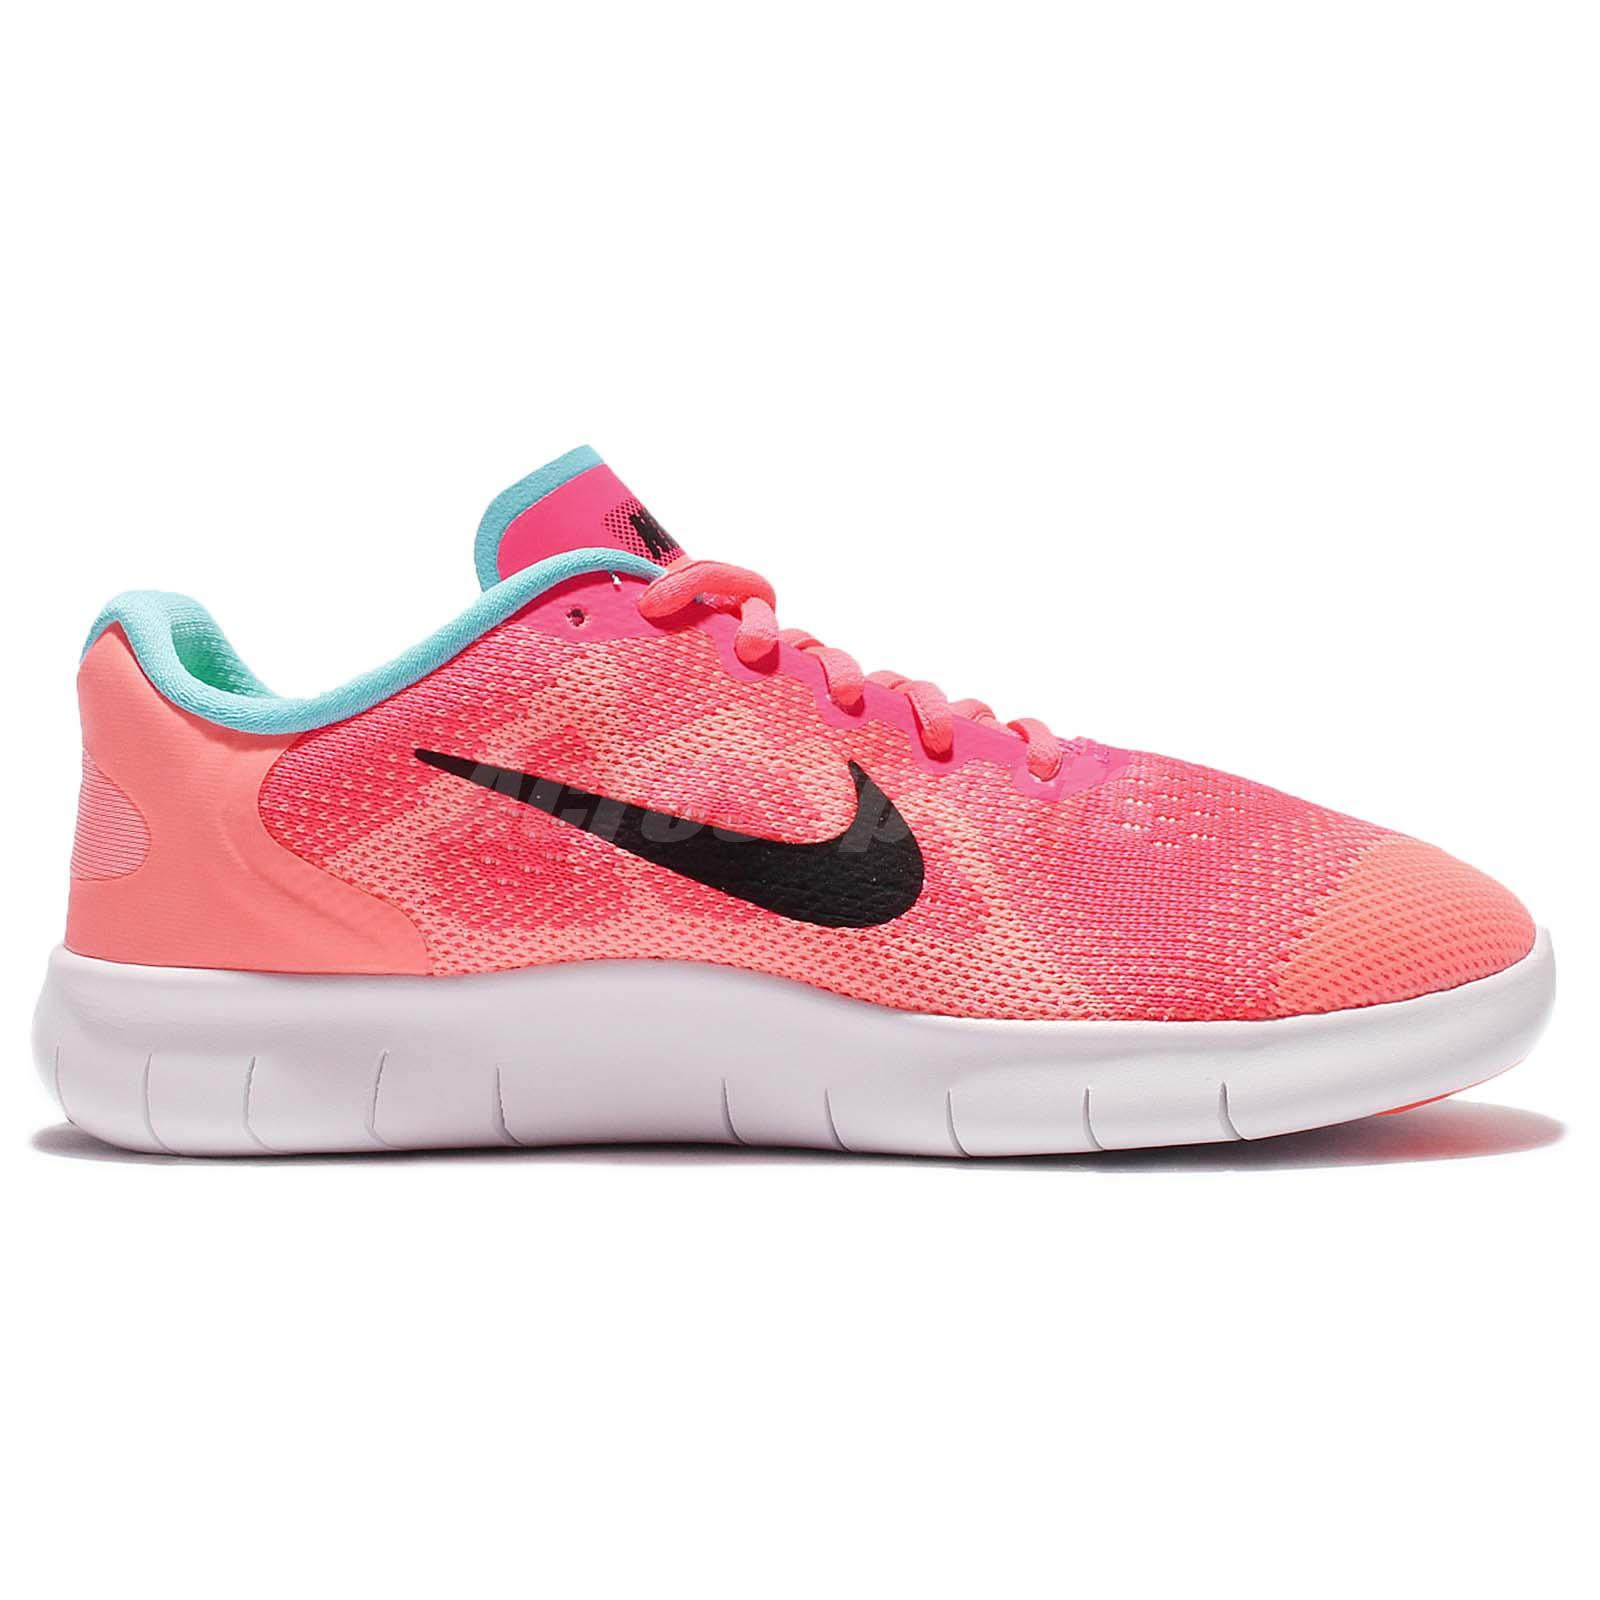 Details about Nike Free RN 2017 GS Pink White Kid Youth Running Shoes Sneakers 904258 600